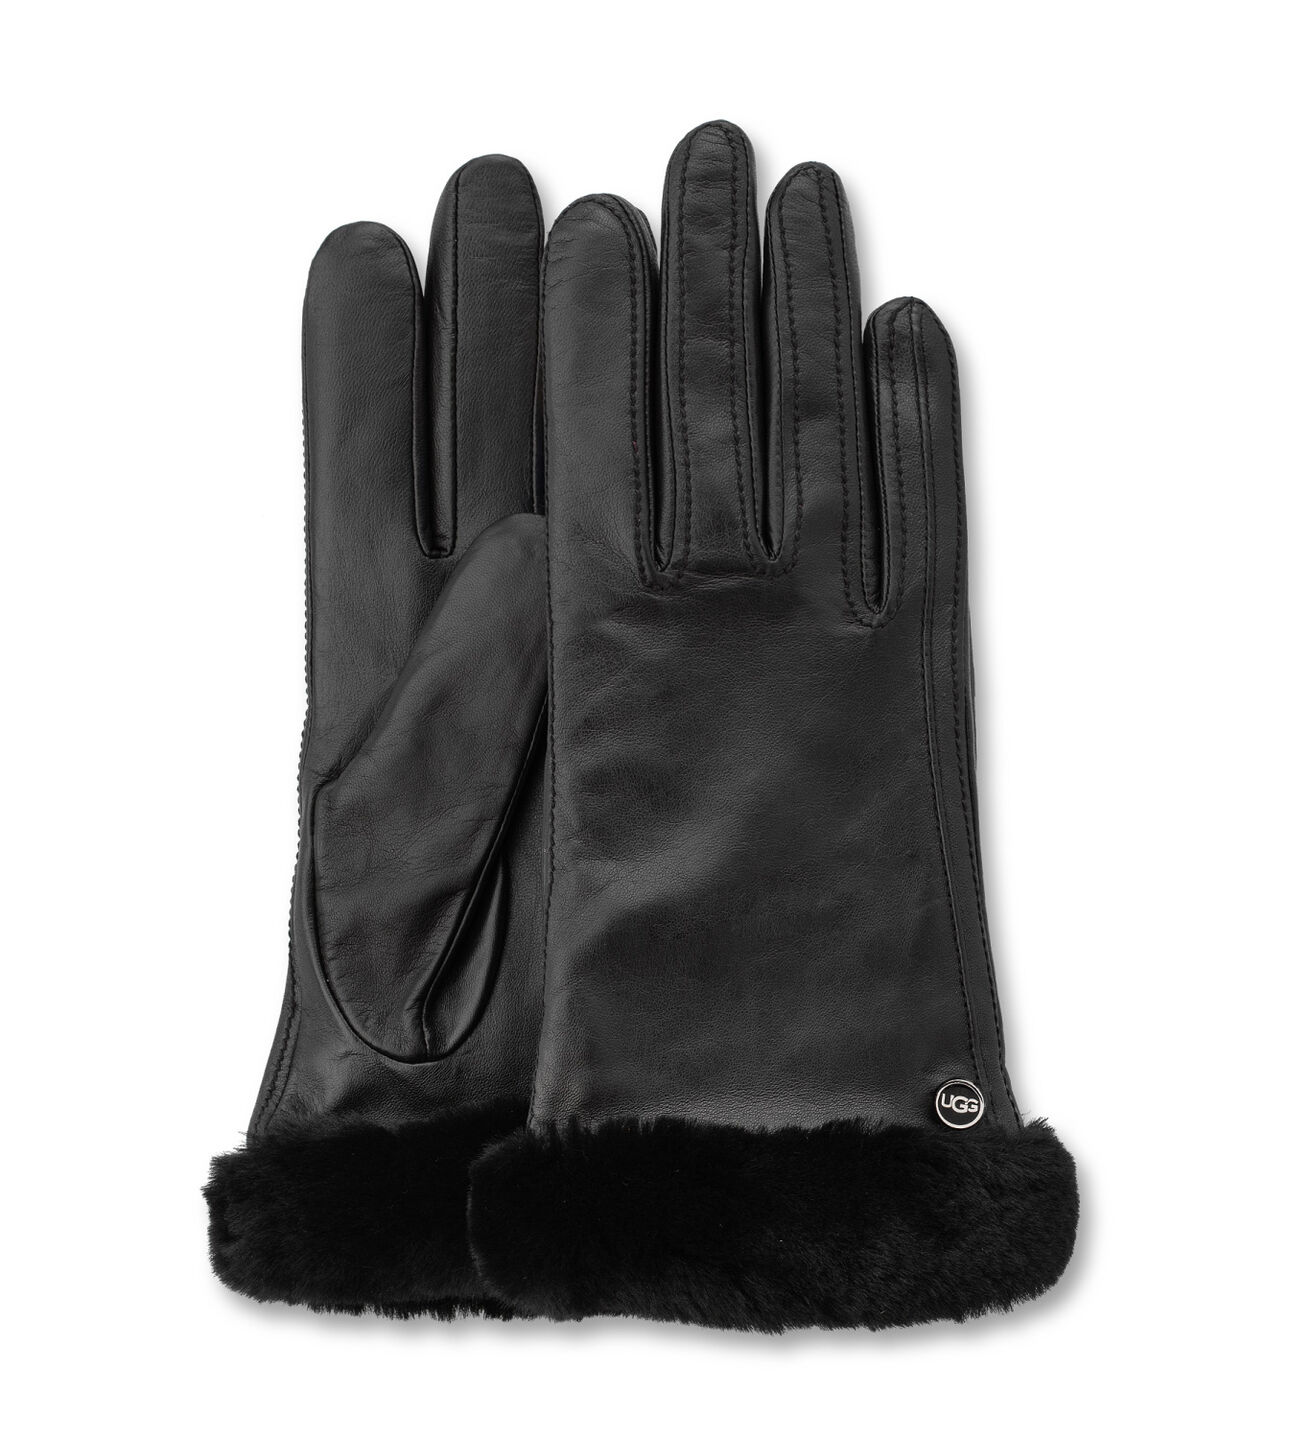 Womens leather gloves sydney - Womens Leather Gloves Sydney 28